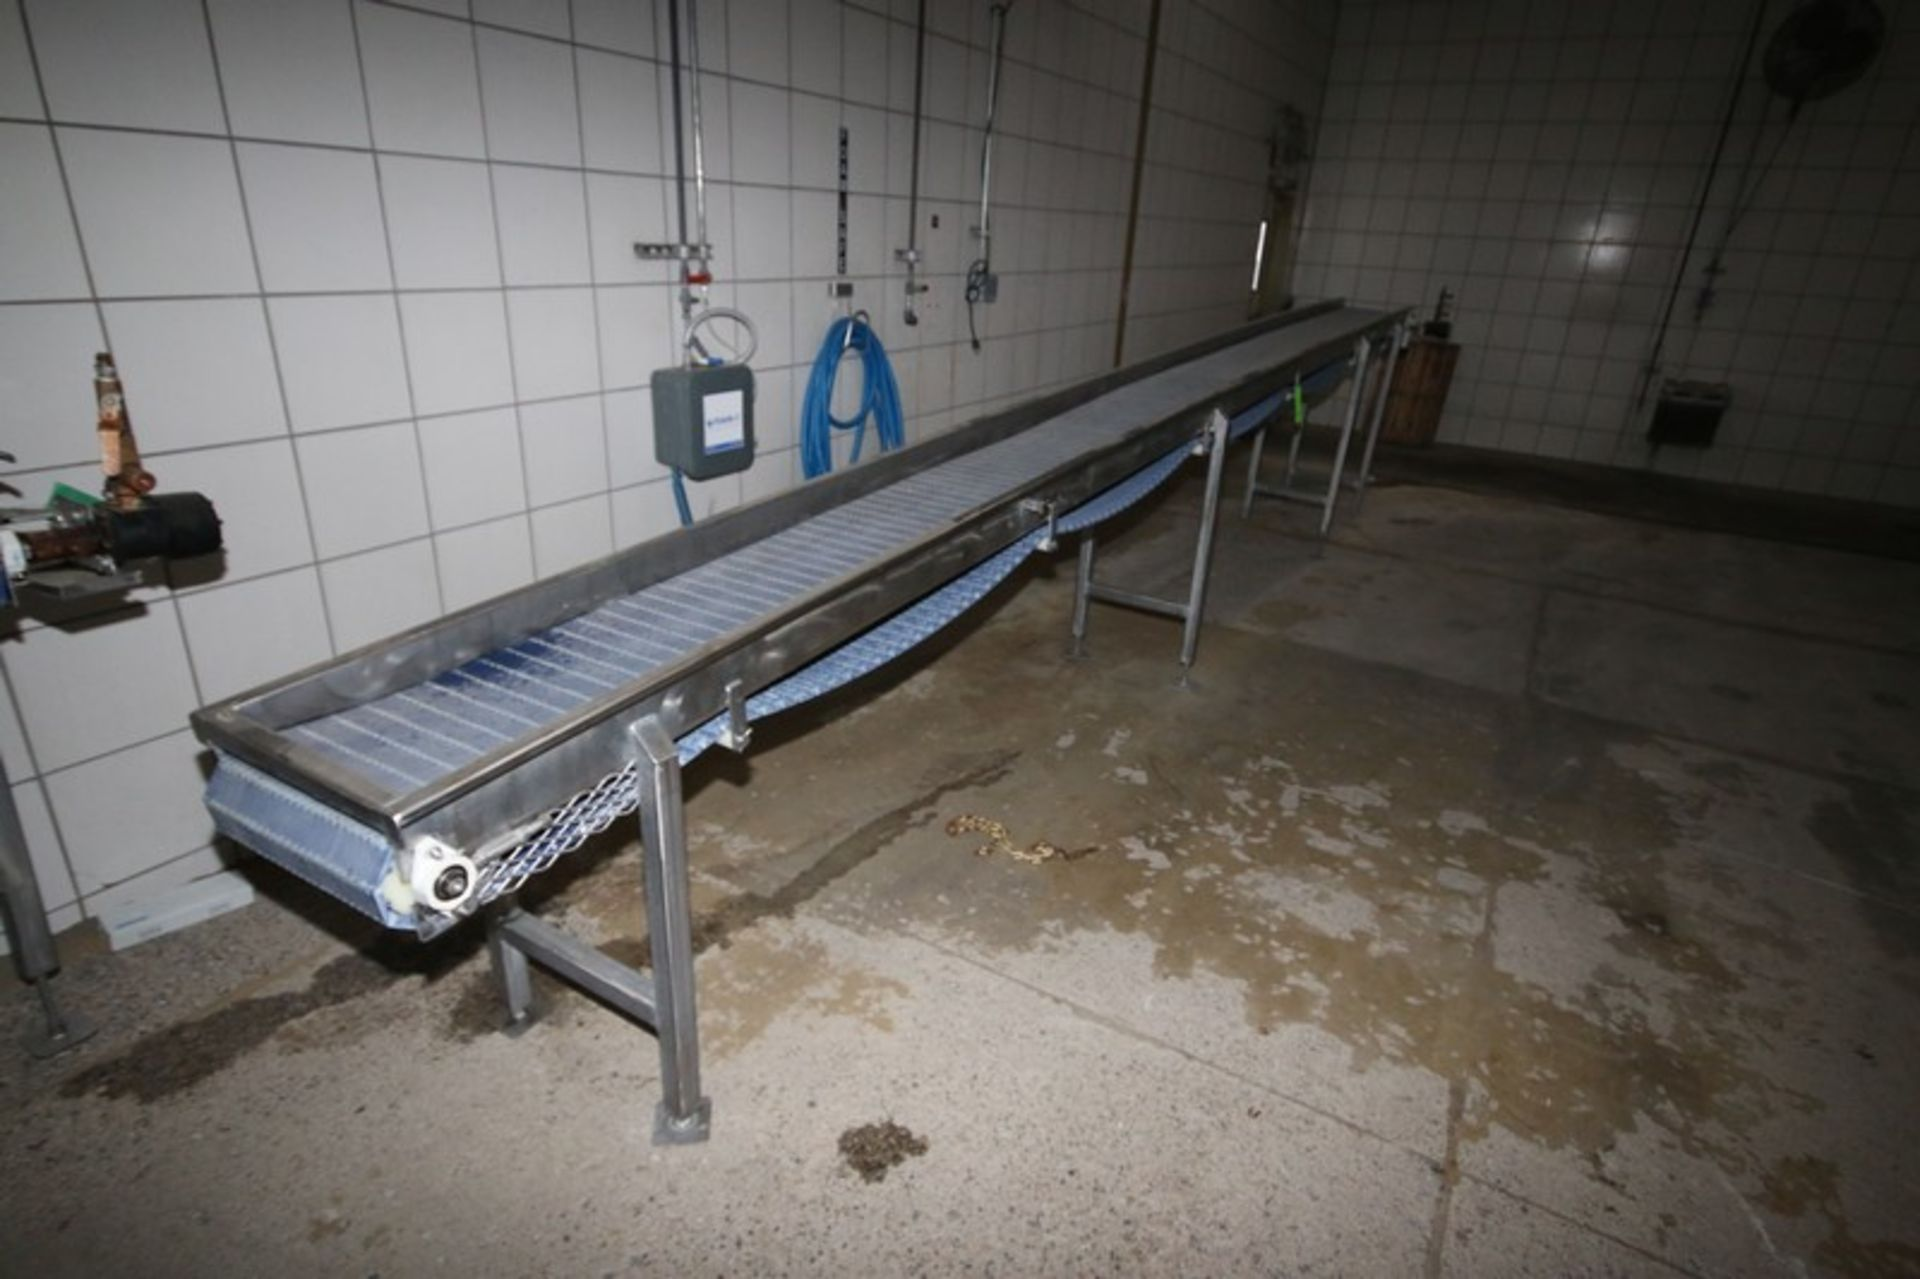 "Lot 37 - S/S Conveyor with S/S Walls, Aprox. 23' L x 16"" W Belt, Hydraulic Operated with S/S Legs"